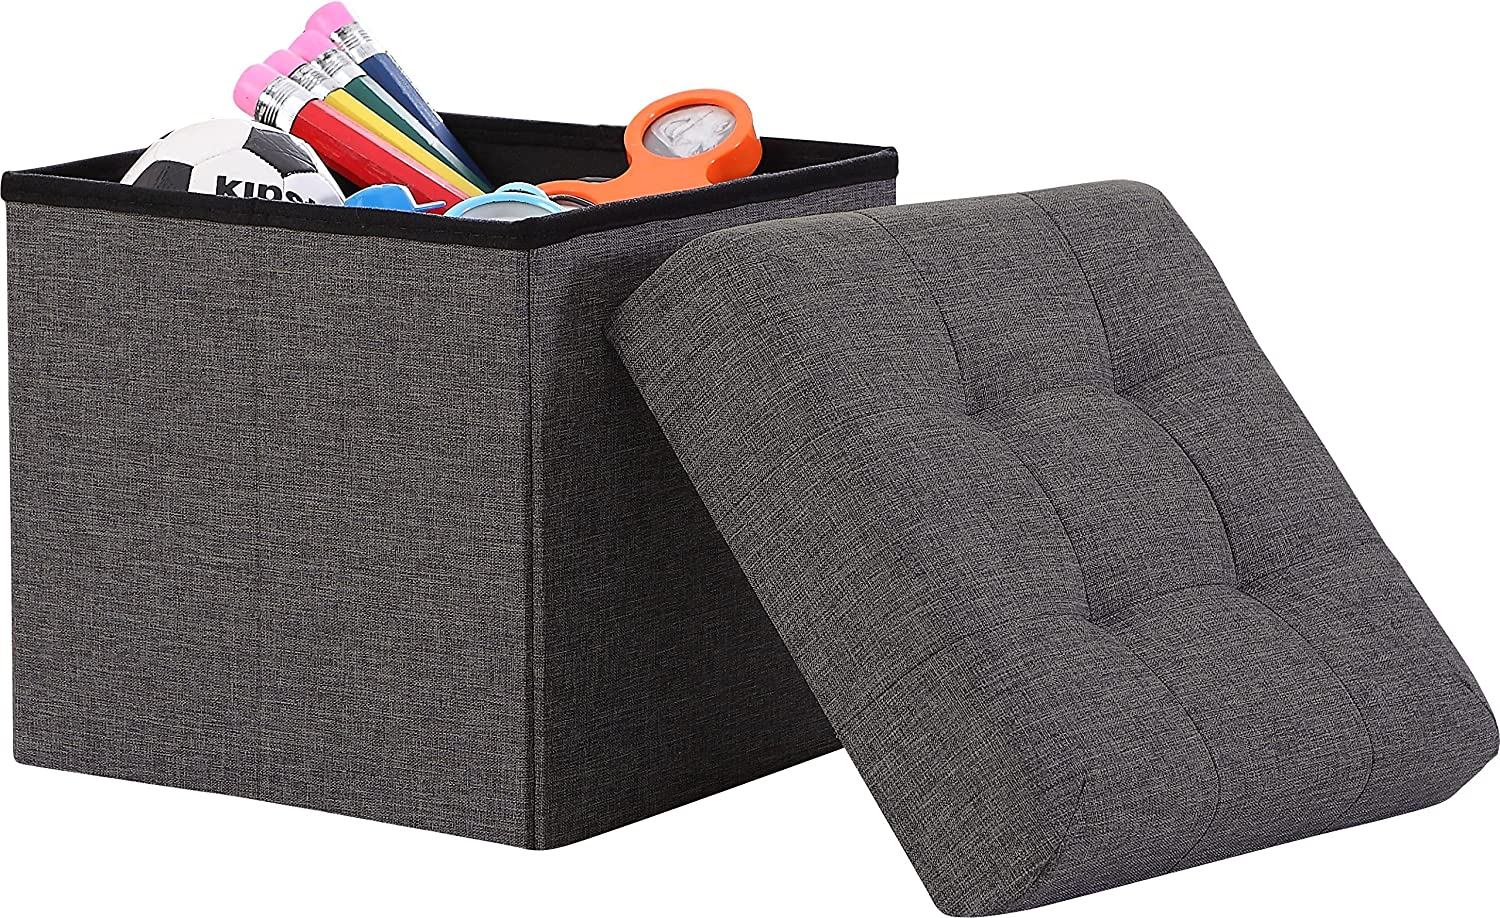 "Ornavo Home Foldable Tufted Linen Storage Ottoman Square Cube Foot Rest Stool/Seat - 15"" x 15"" x 15"" (Charcoal)"